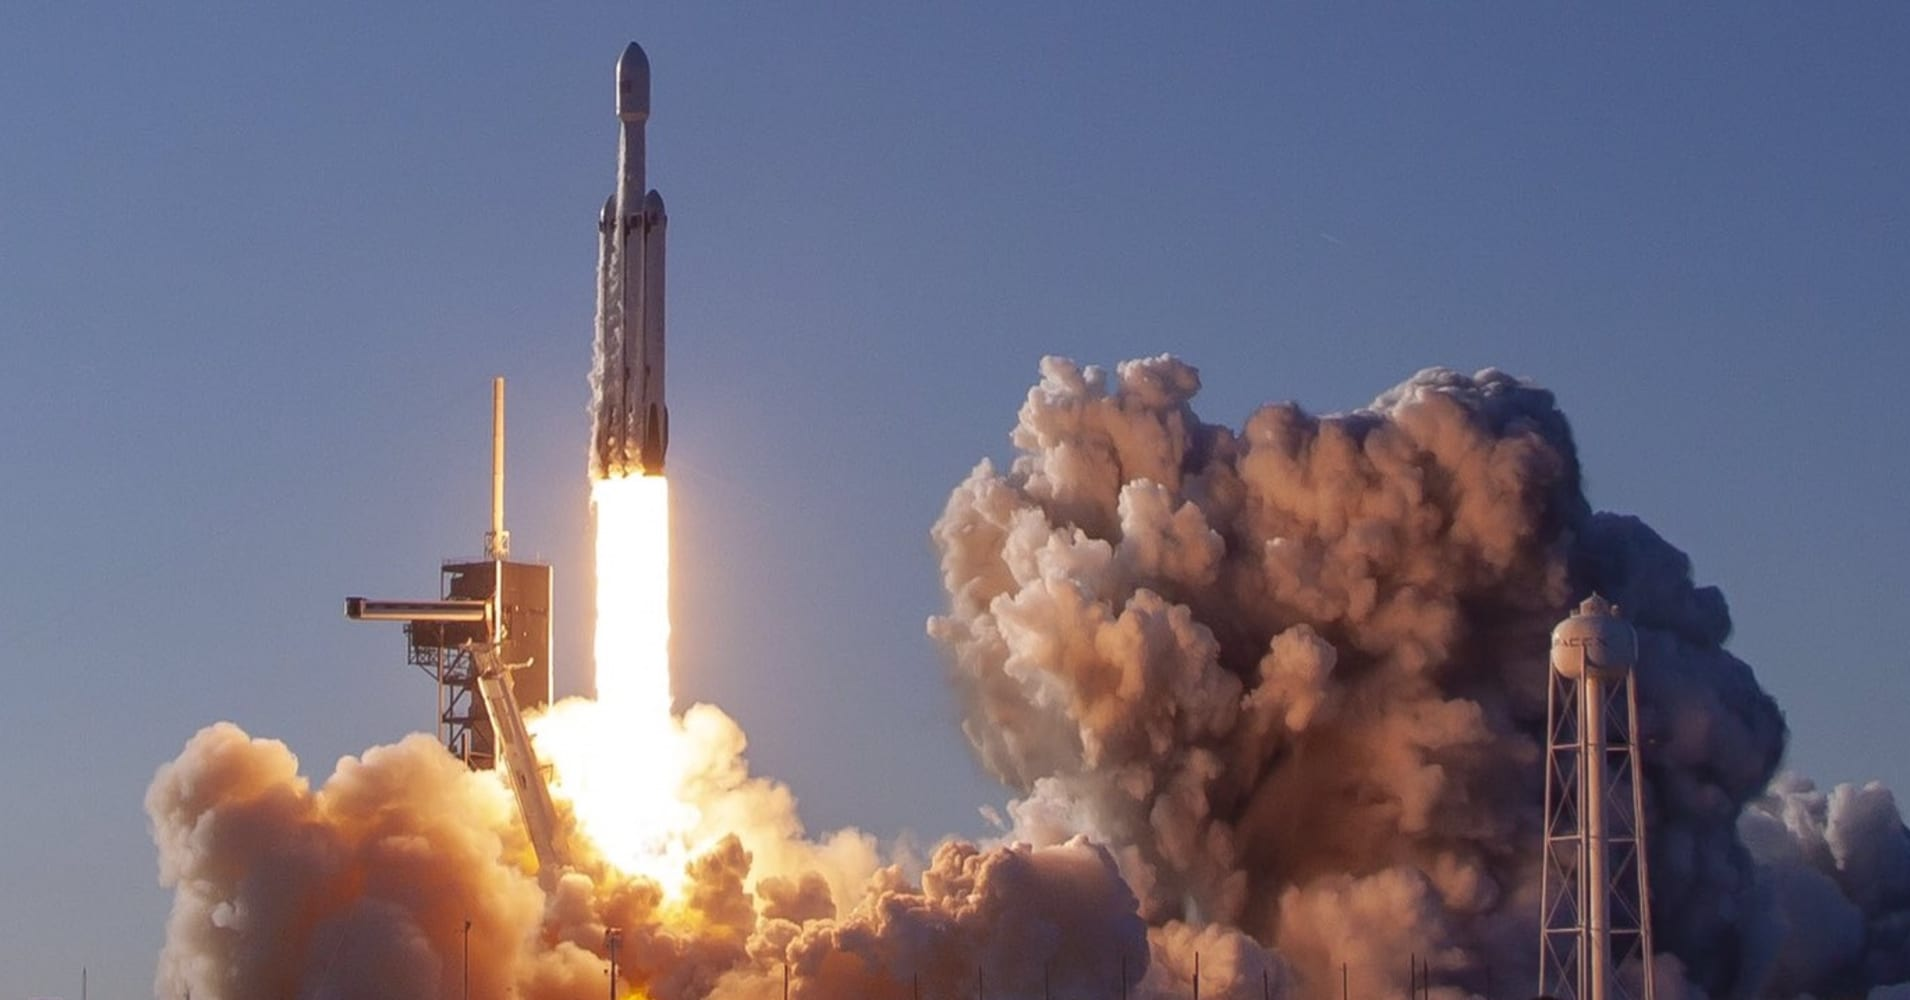 Falcon Heavy's first commercial flight is 'huge' as 'an inflection point' for SpaceX, banker says